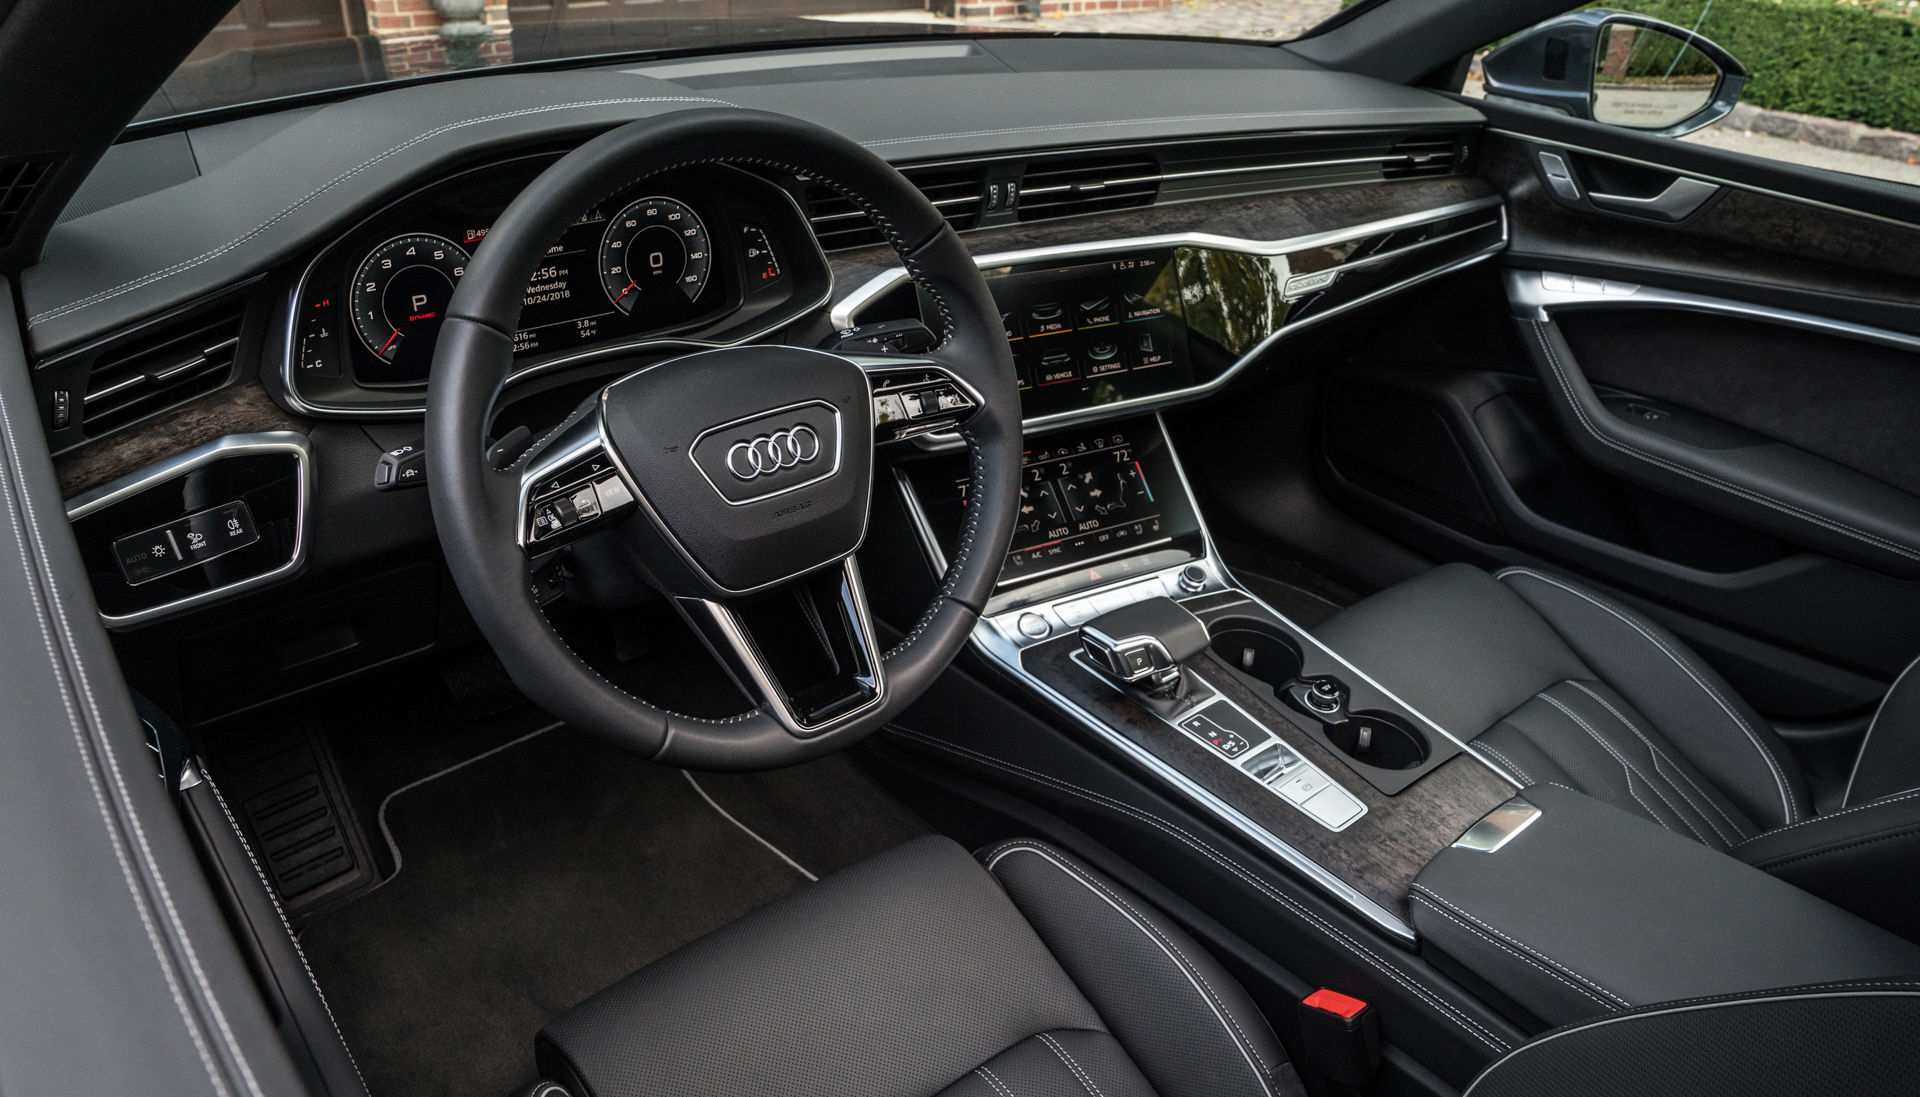 84 Best Review 2019 Audi A7 Specs by 2019 Audi A7